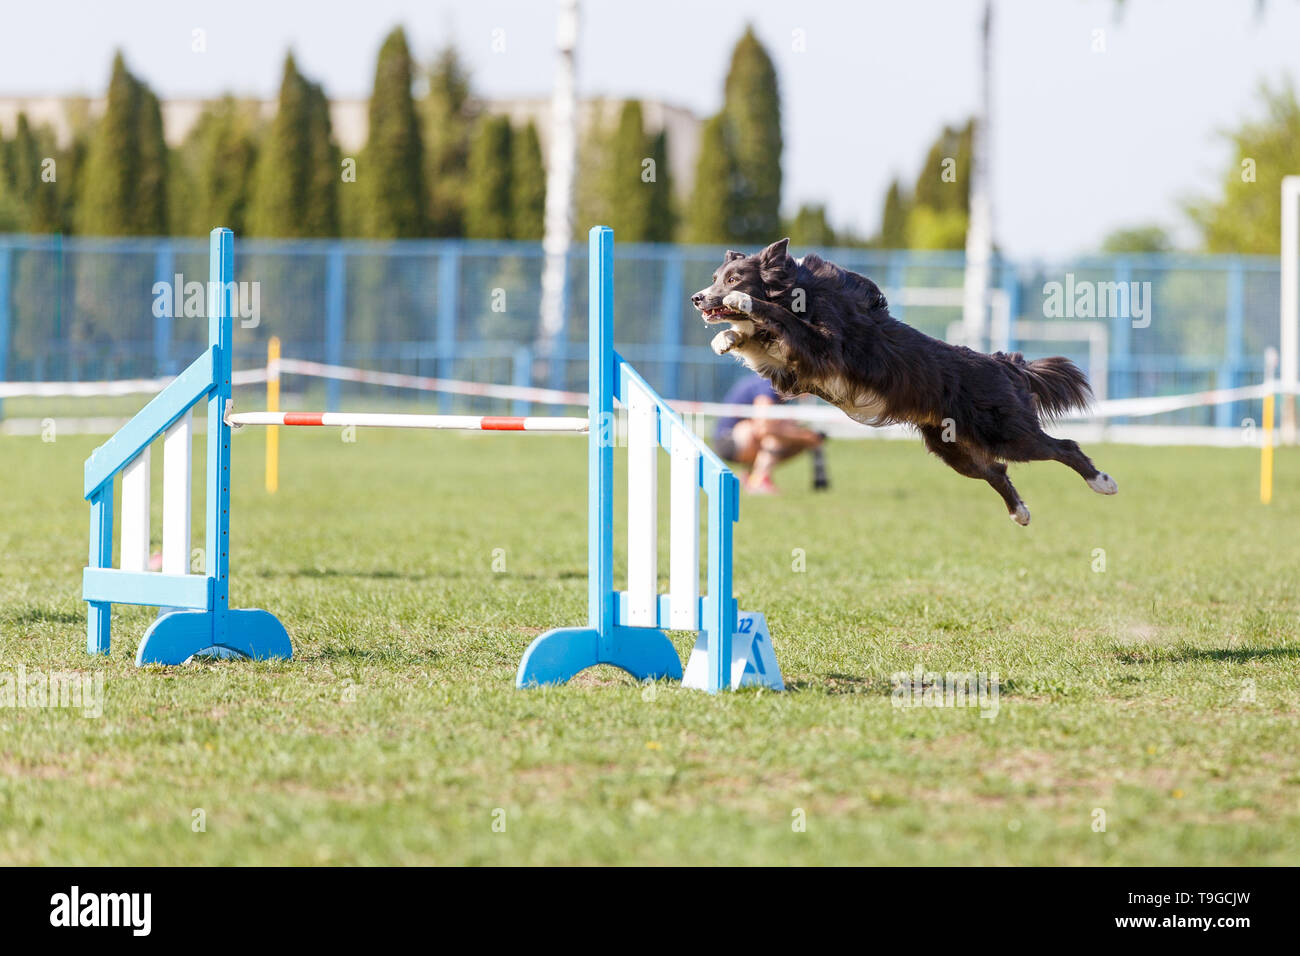 Border collie jumping over hurdle in agility competition - Stock Image